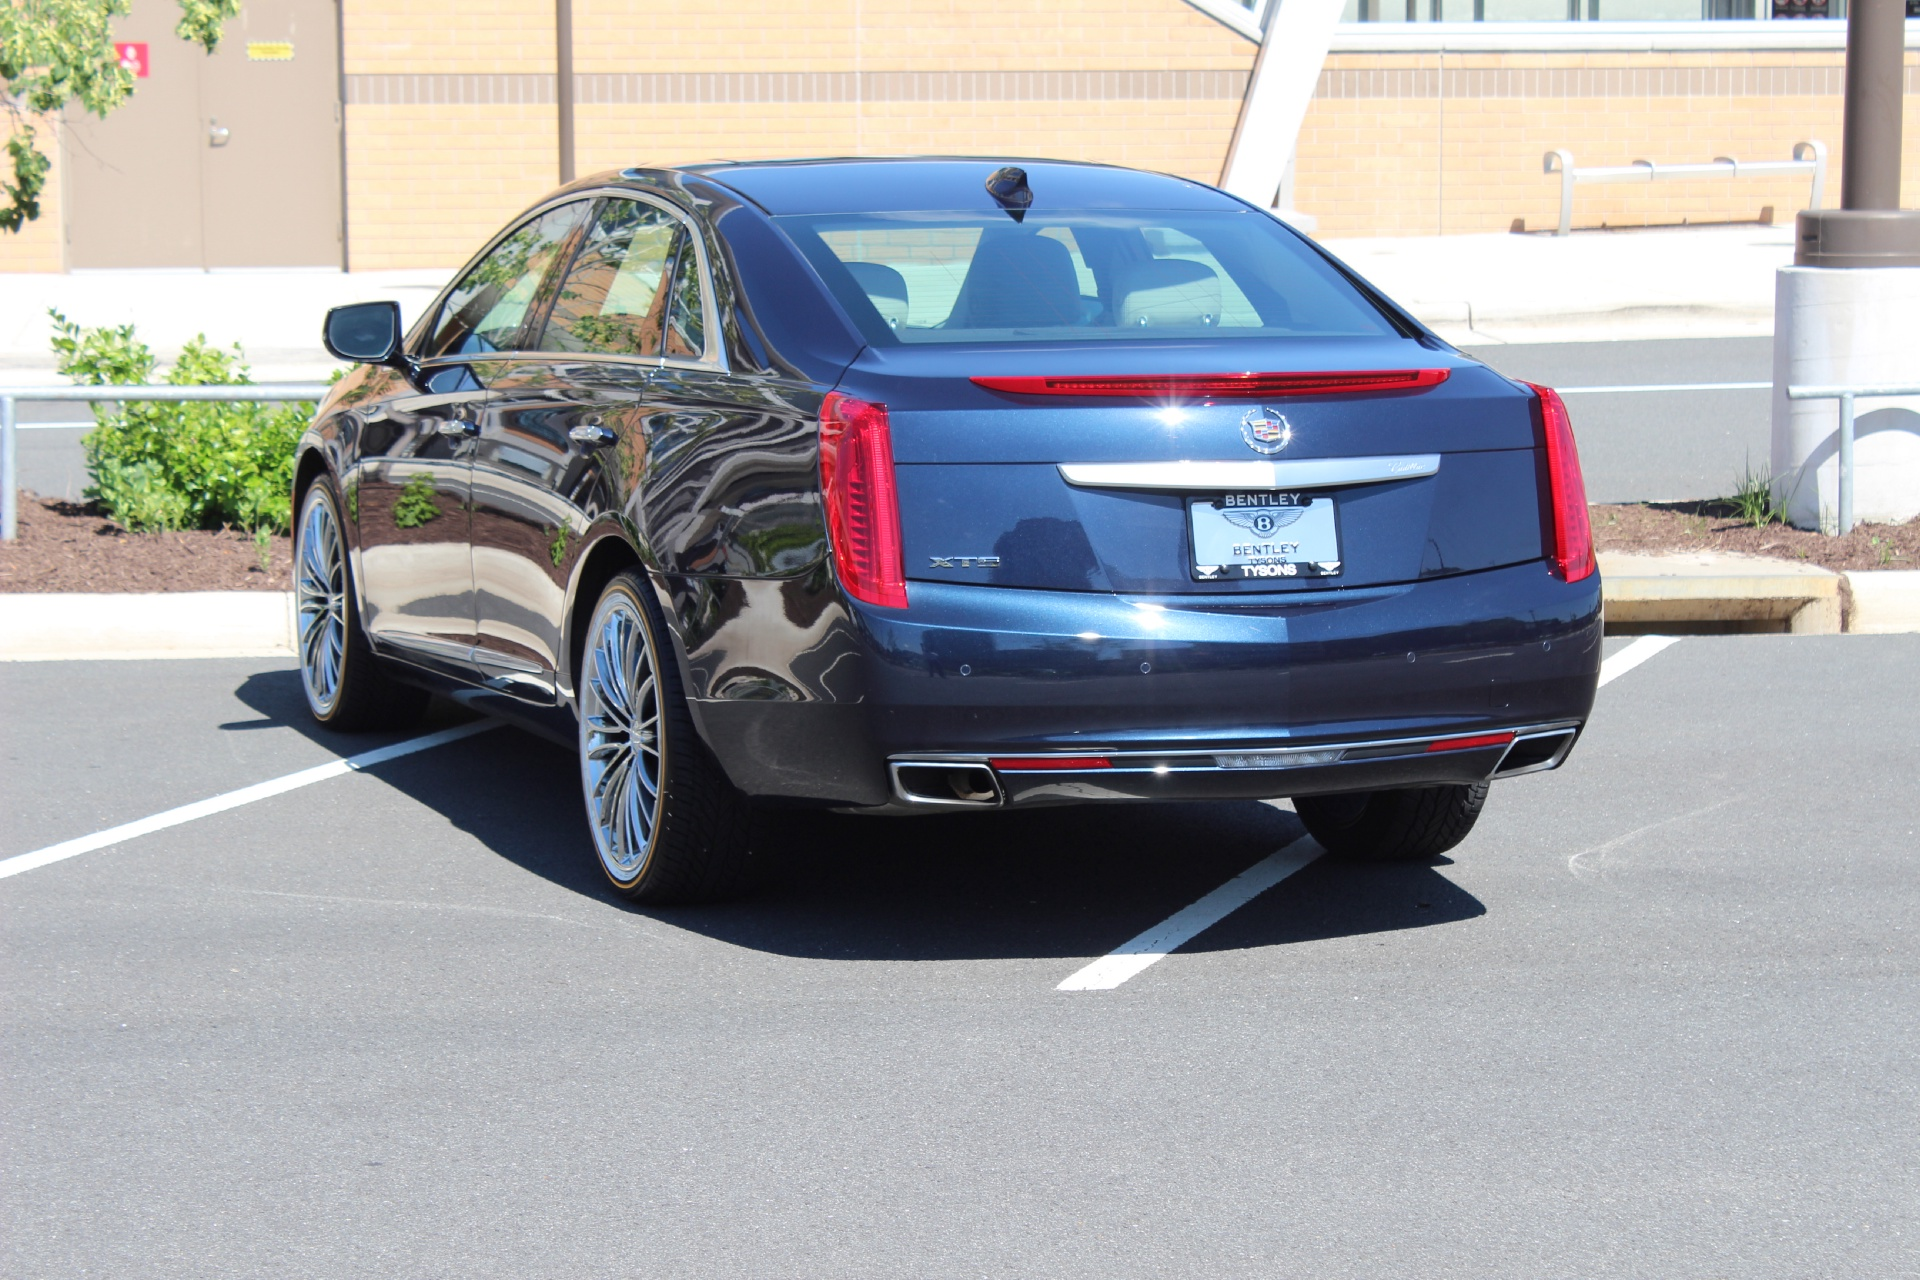 2015 Cadillac XTS Luxury Stock # 6NG8050965A for sale near